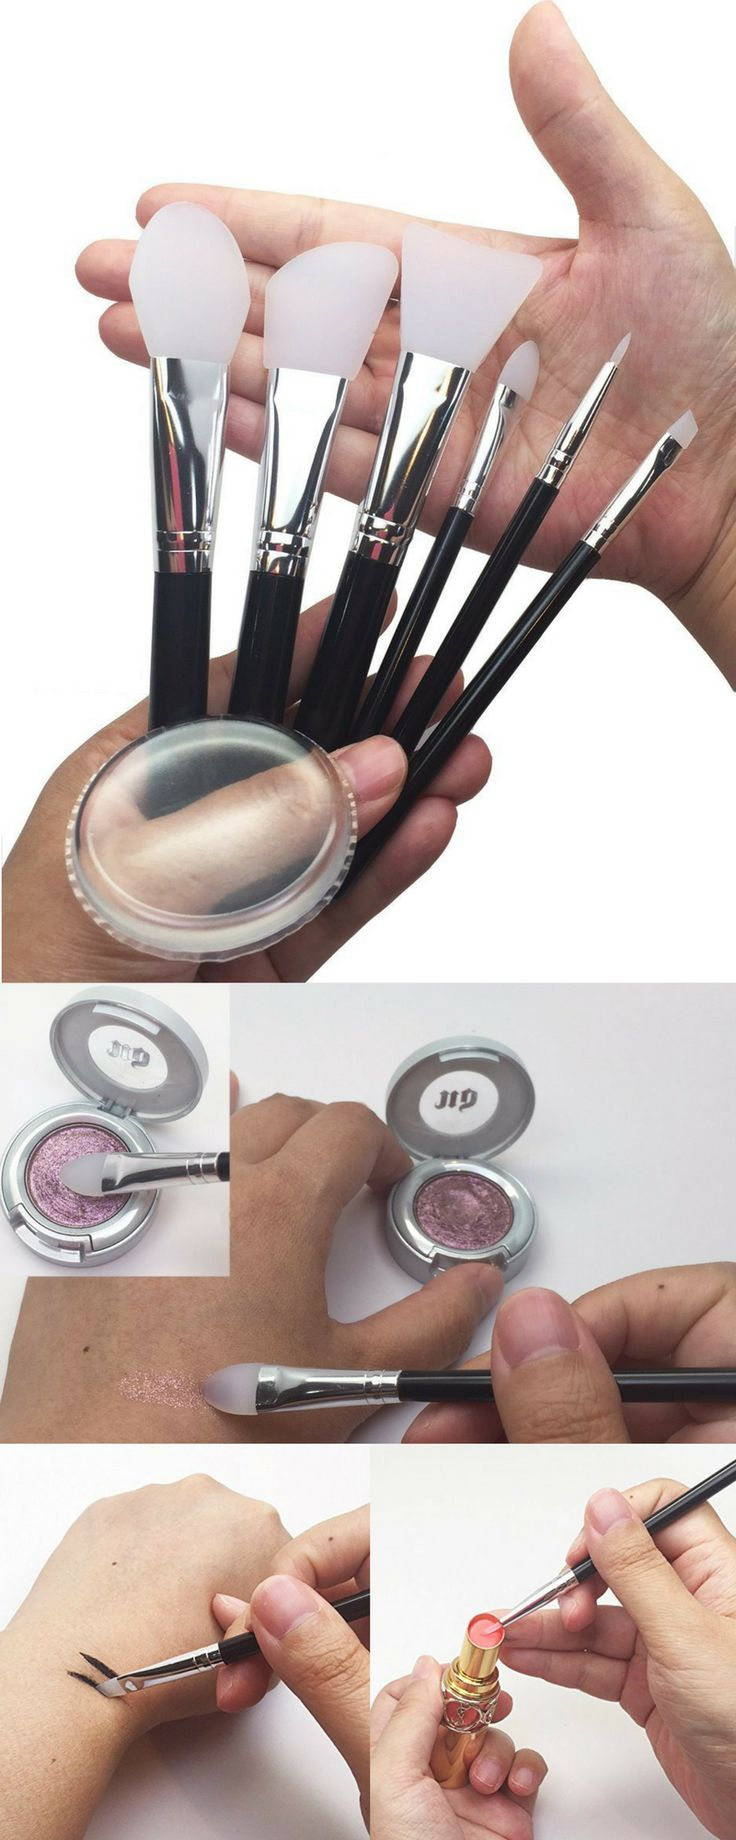 7 Pcs Clear Silicone Sponge Makeup Brush Set + Silisponge